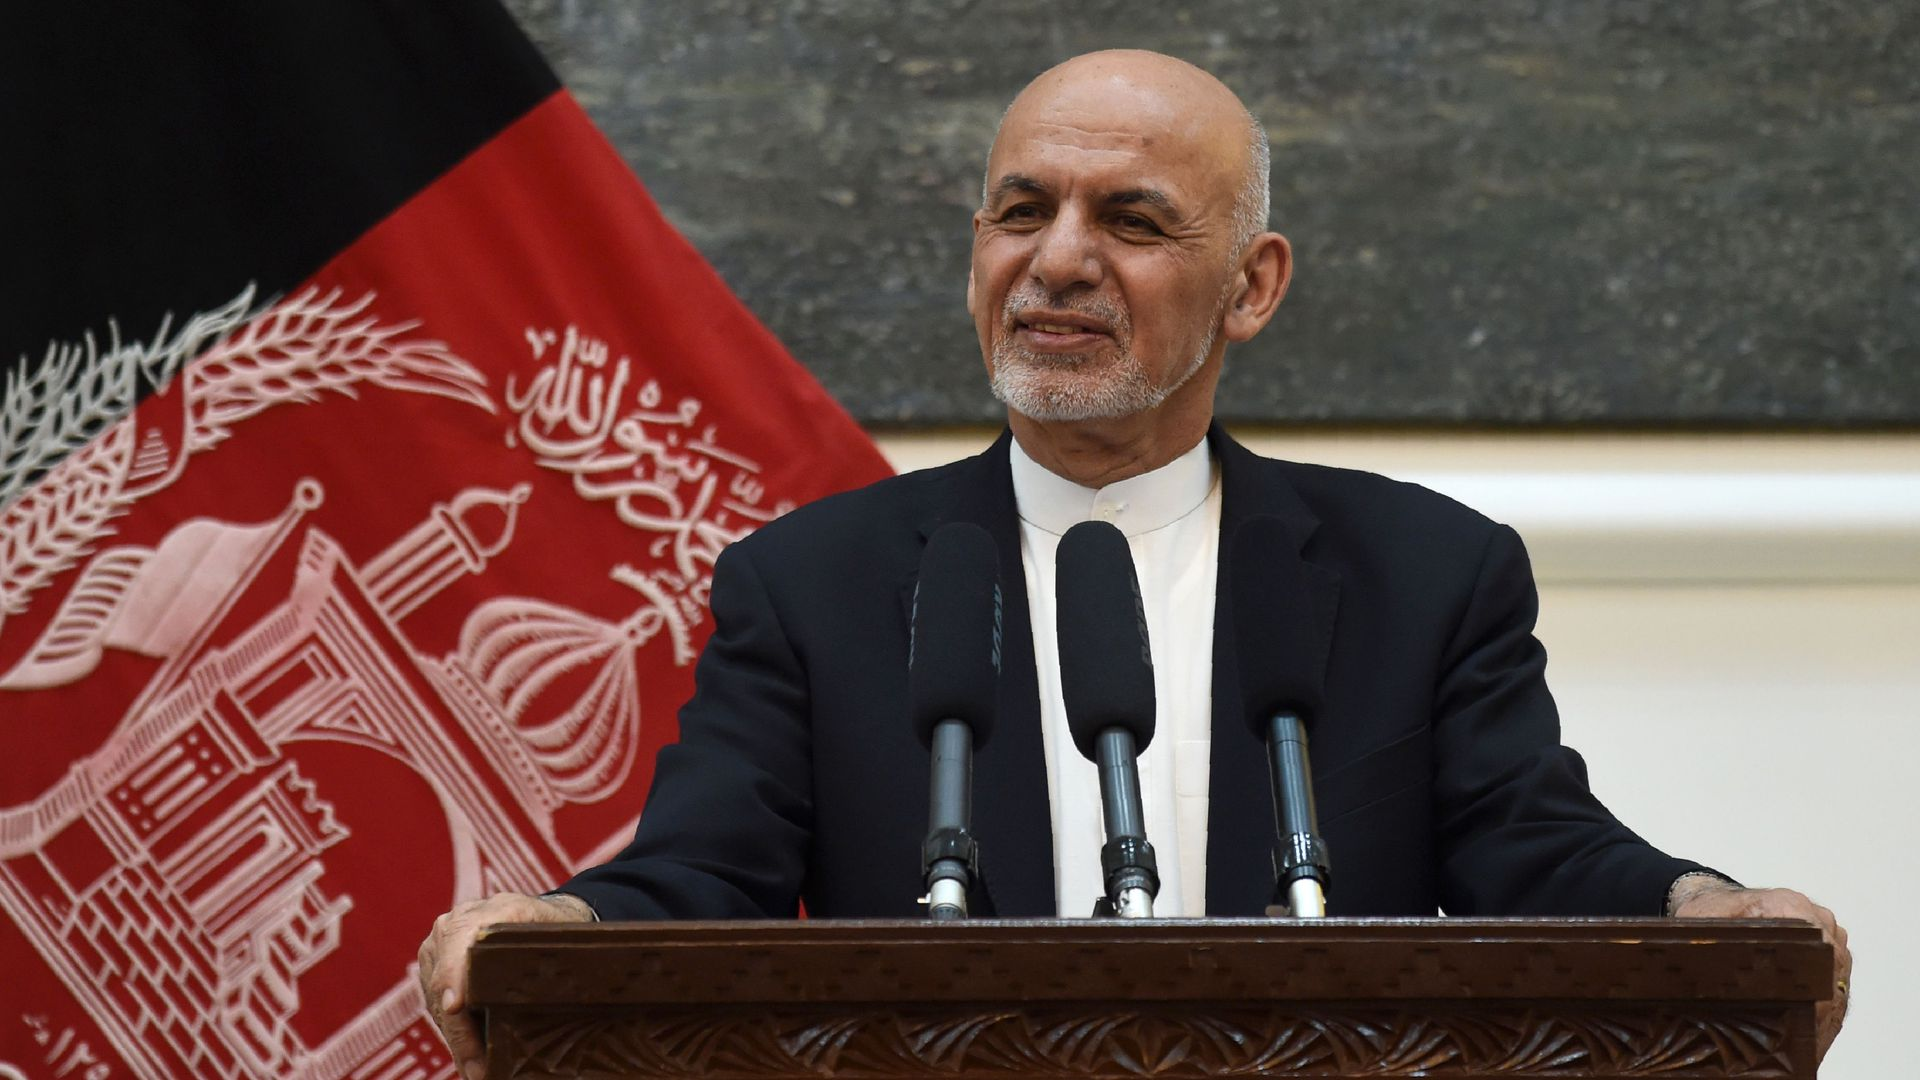 Afghan President Ashraf Ghani listens to US Secretary of State Mike Pompeo during a press conference at the Presidential Palace in Kabul